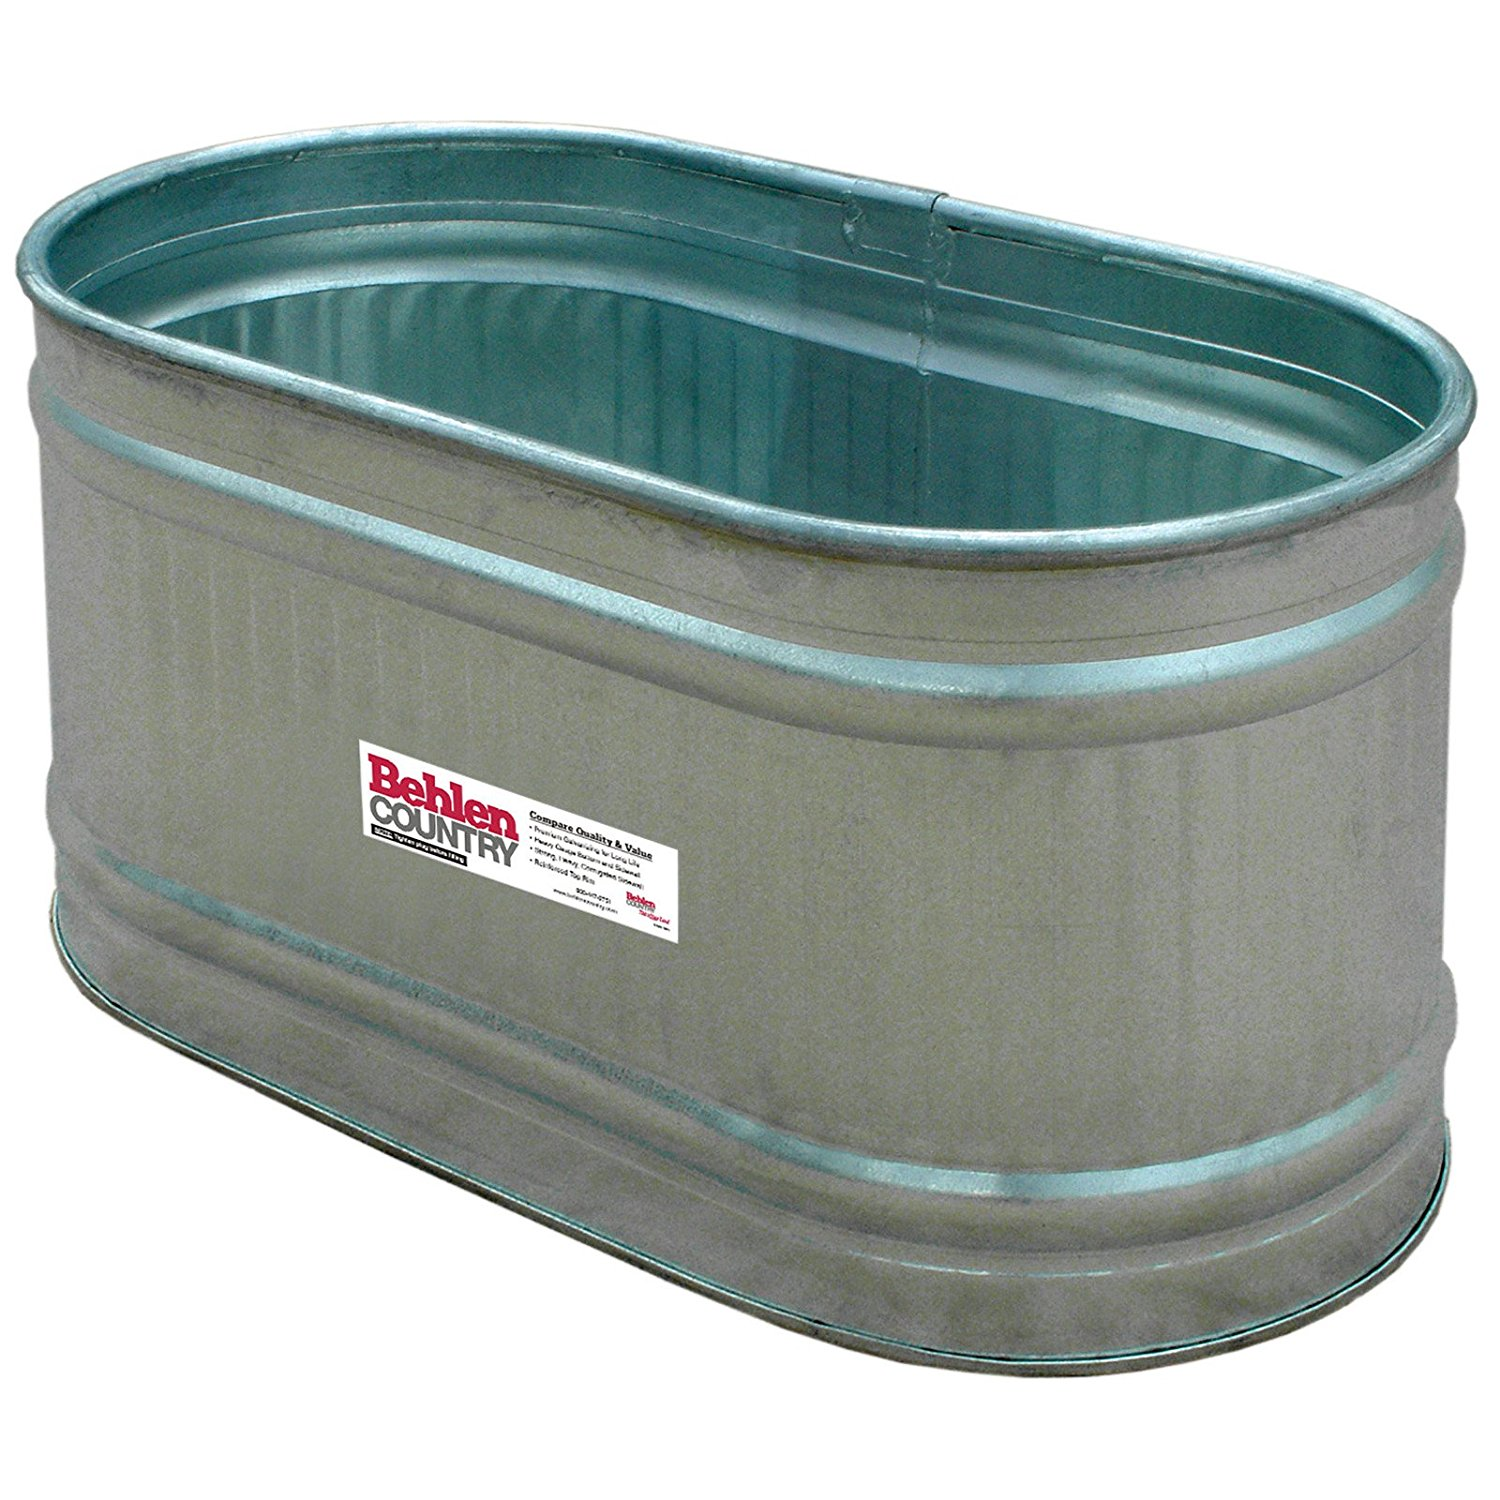 Behlen Galvanized Round End Stock Tank